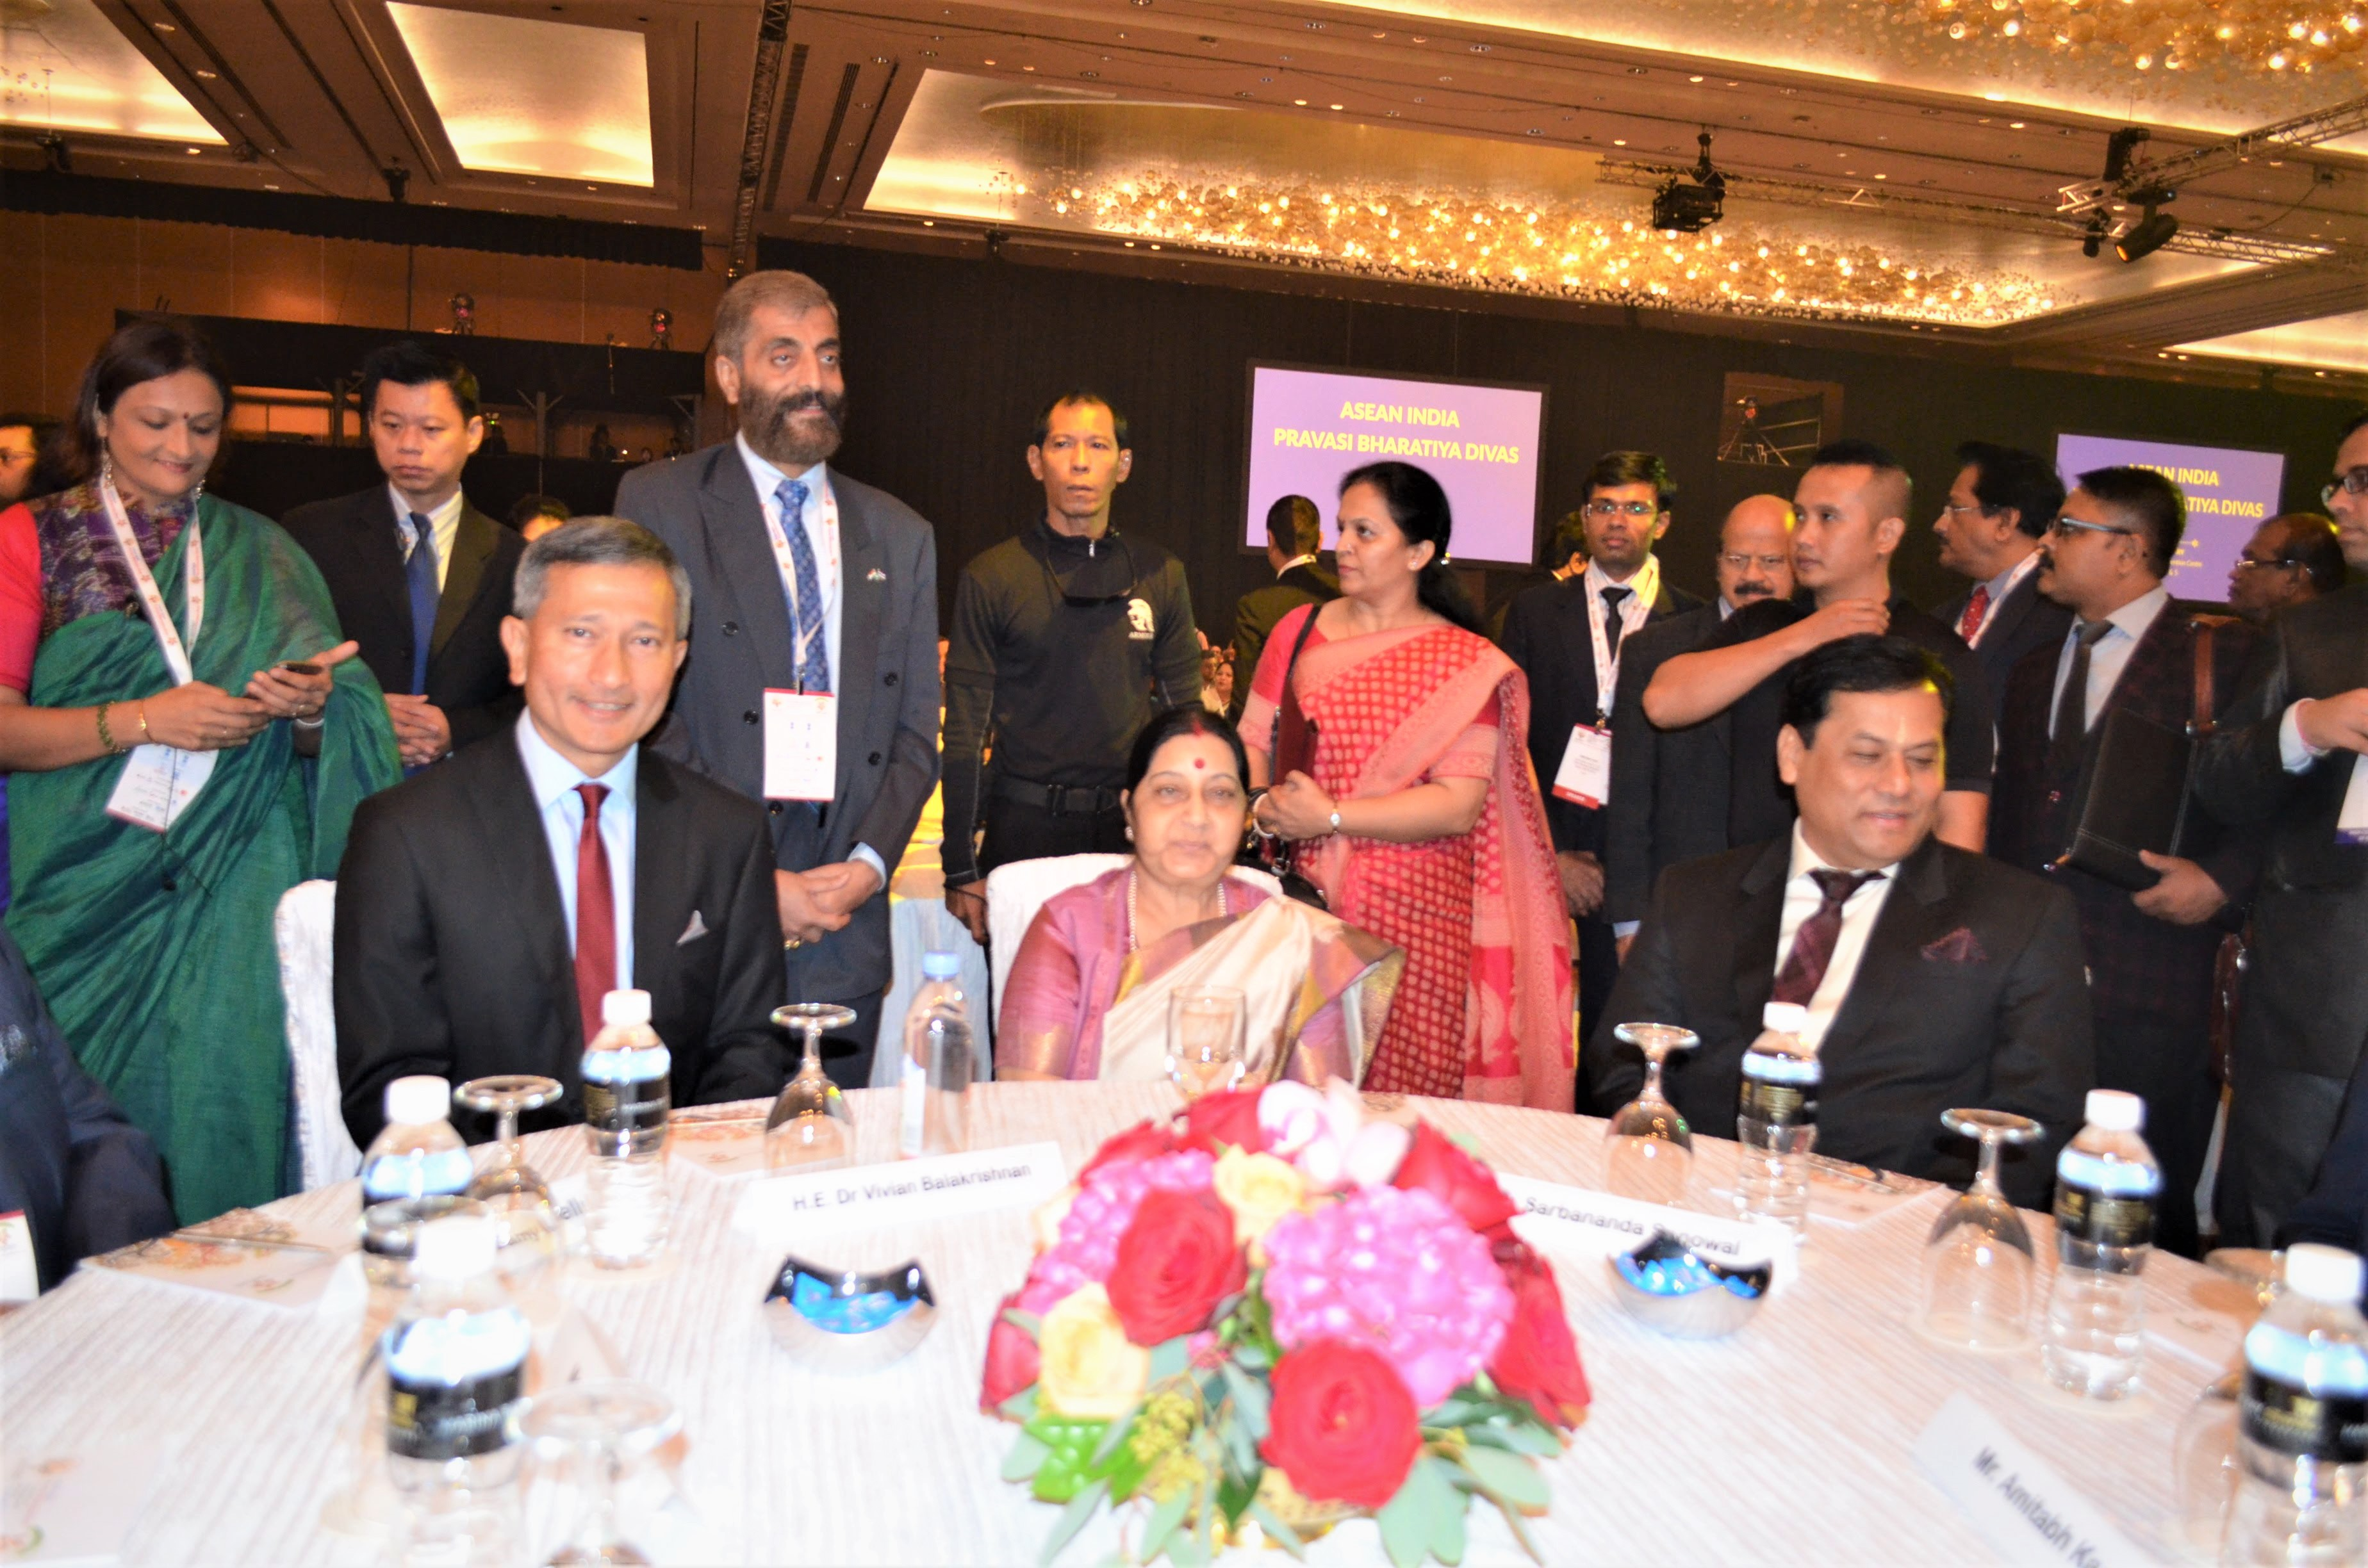 (From left to right) Minister for Foreign Affairs of Singapore Dr Vivian Balakrishnan, Indian Minister of External Affairs Sushma Swaraj and Chief Minister of the Indian state of Assam Sarbananda Sonowal present at the Pravasi Bhartiya Divas in Singapore. Photo: Connected to India